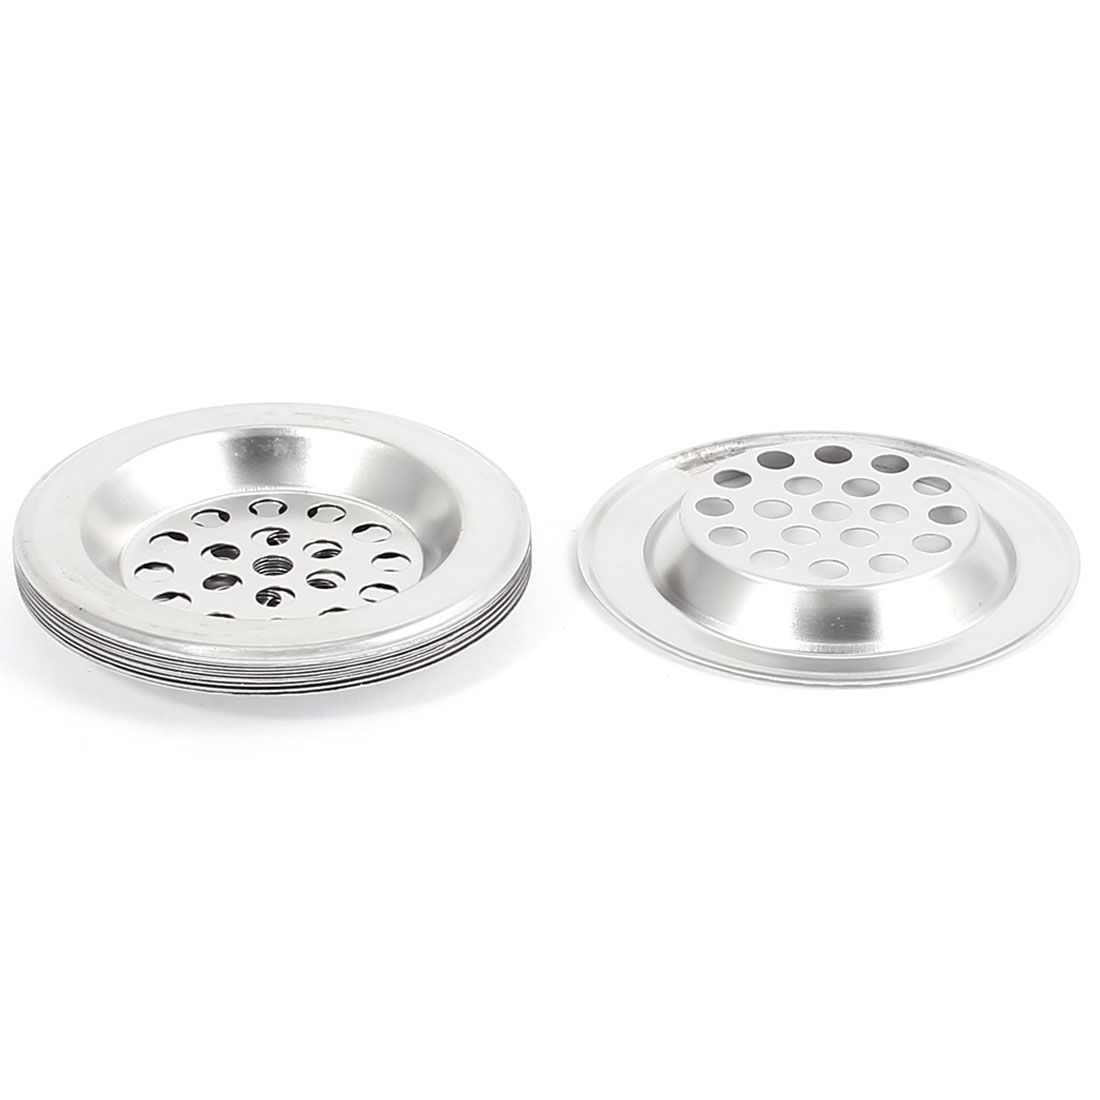 12 Pcs Bathroom Kitchen Floor Sink Plug Drain Strainer 59mm Dia For Drainpipe Click Image To Review More Details Food Strainer Sink Strainer Floor Sink